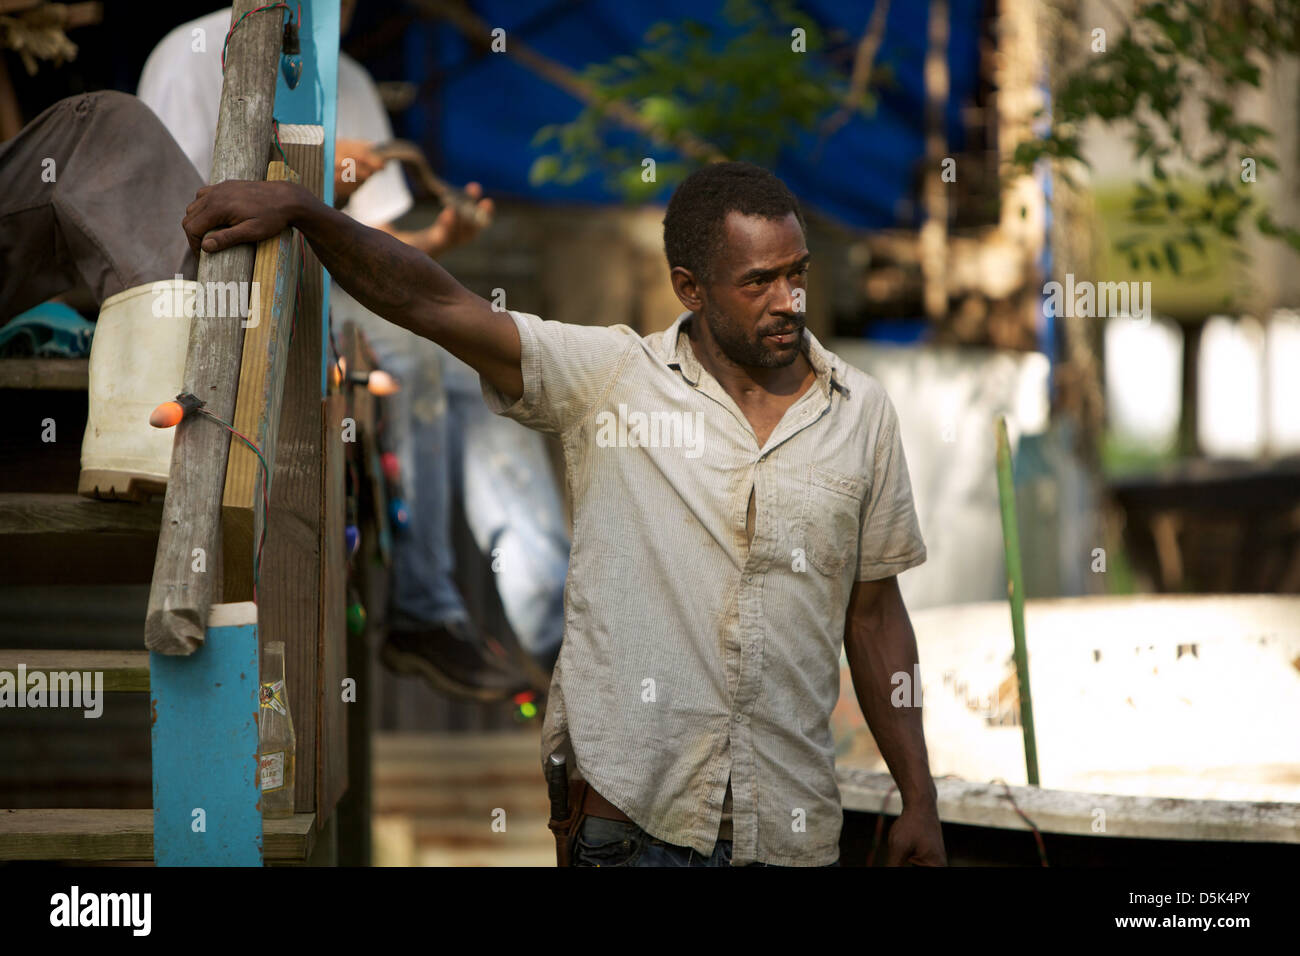 DWIGHT HENRY BEASTS OF THE SOUTHERN WILD (2012) - Stock Image